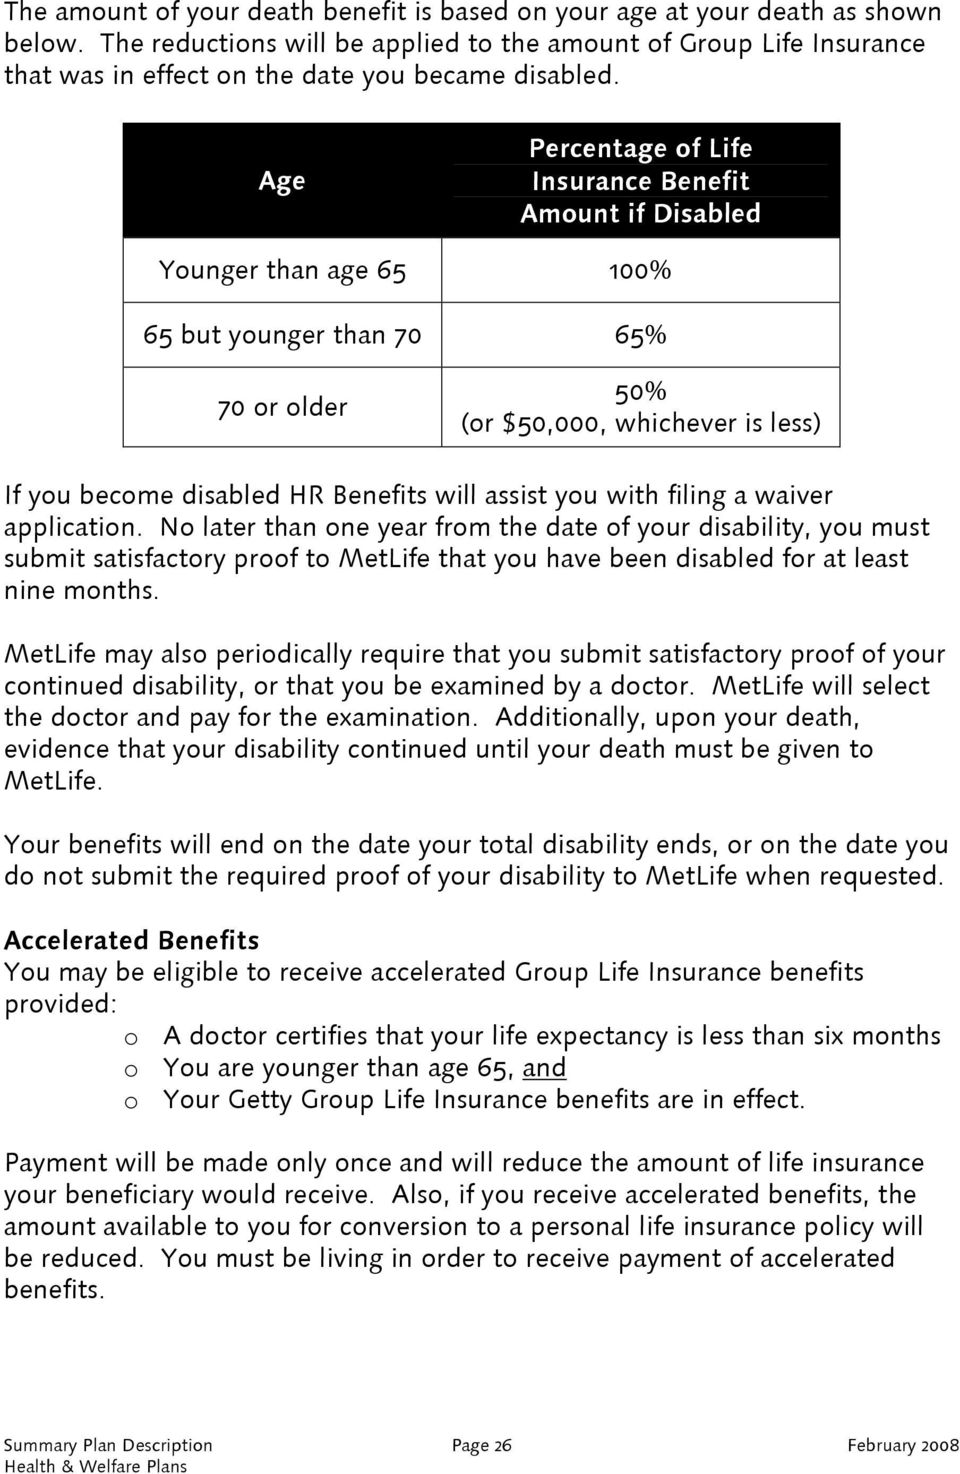 Age Percentage of Life Insurance Benefit Amount if Disabled Younger than age 65 100% 65 but younger than 70 65% 70 or older 50% (or $50,000, whichever is less) If you become disabled HR Benefits will